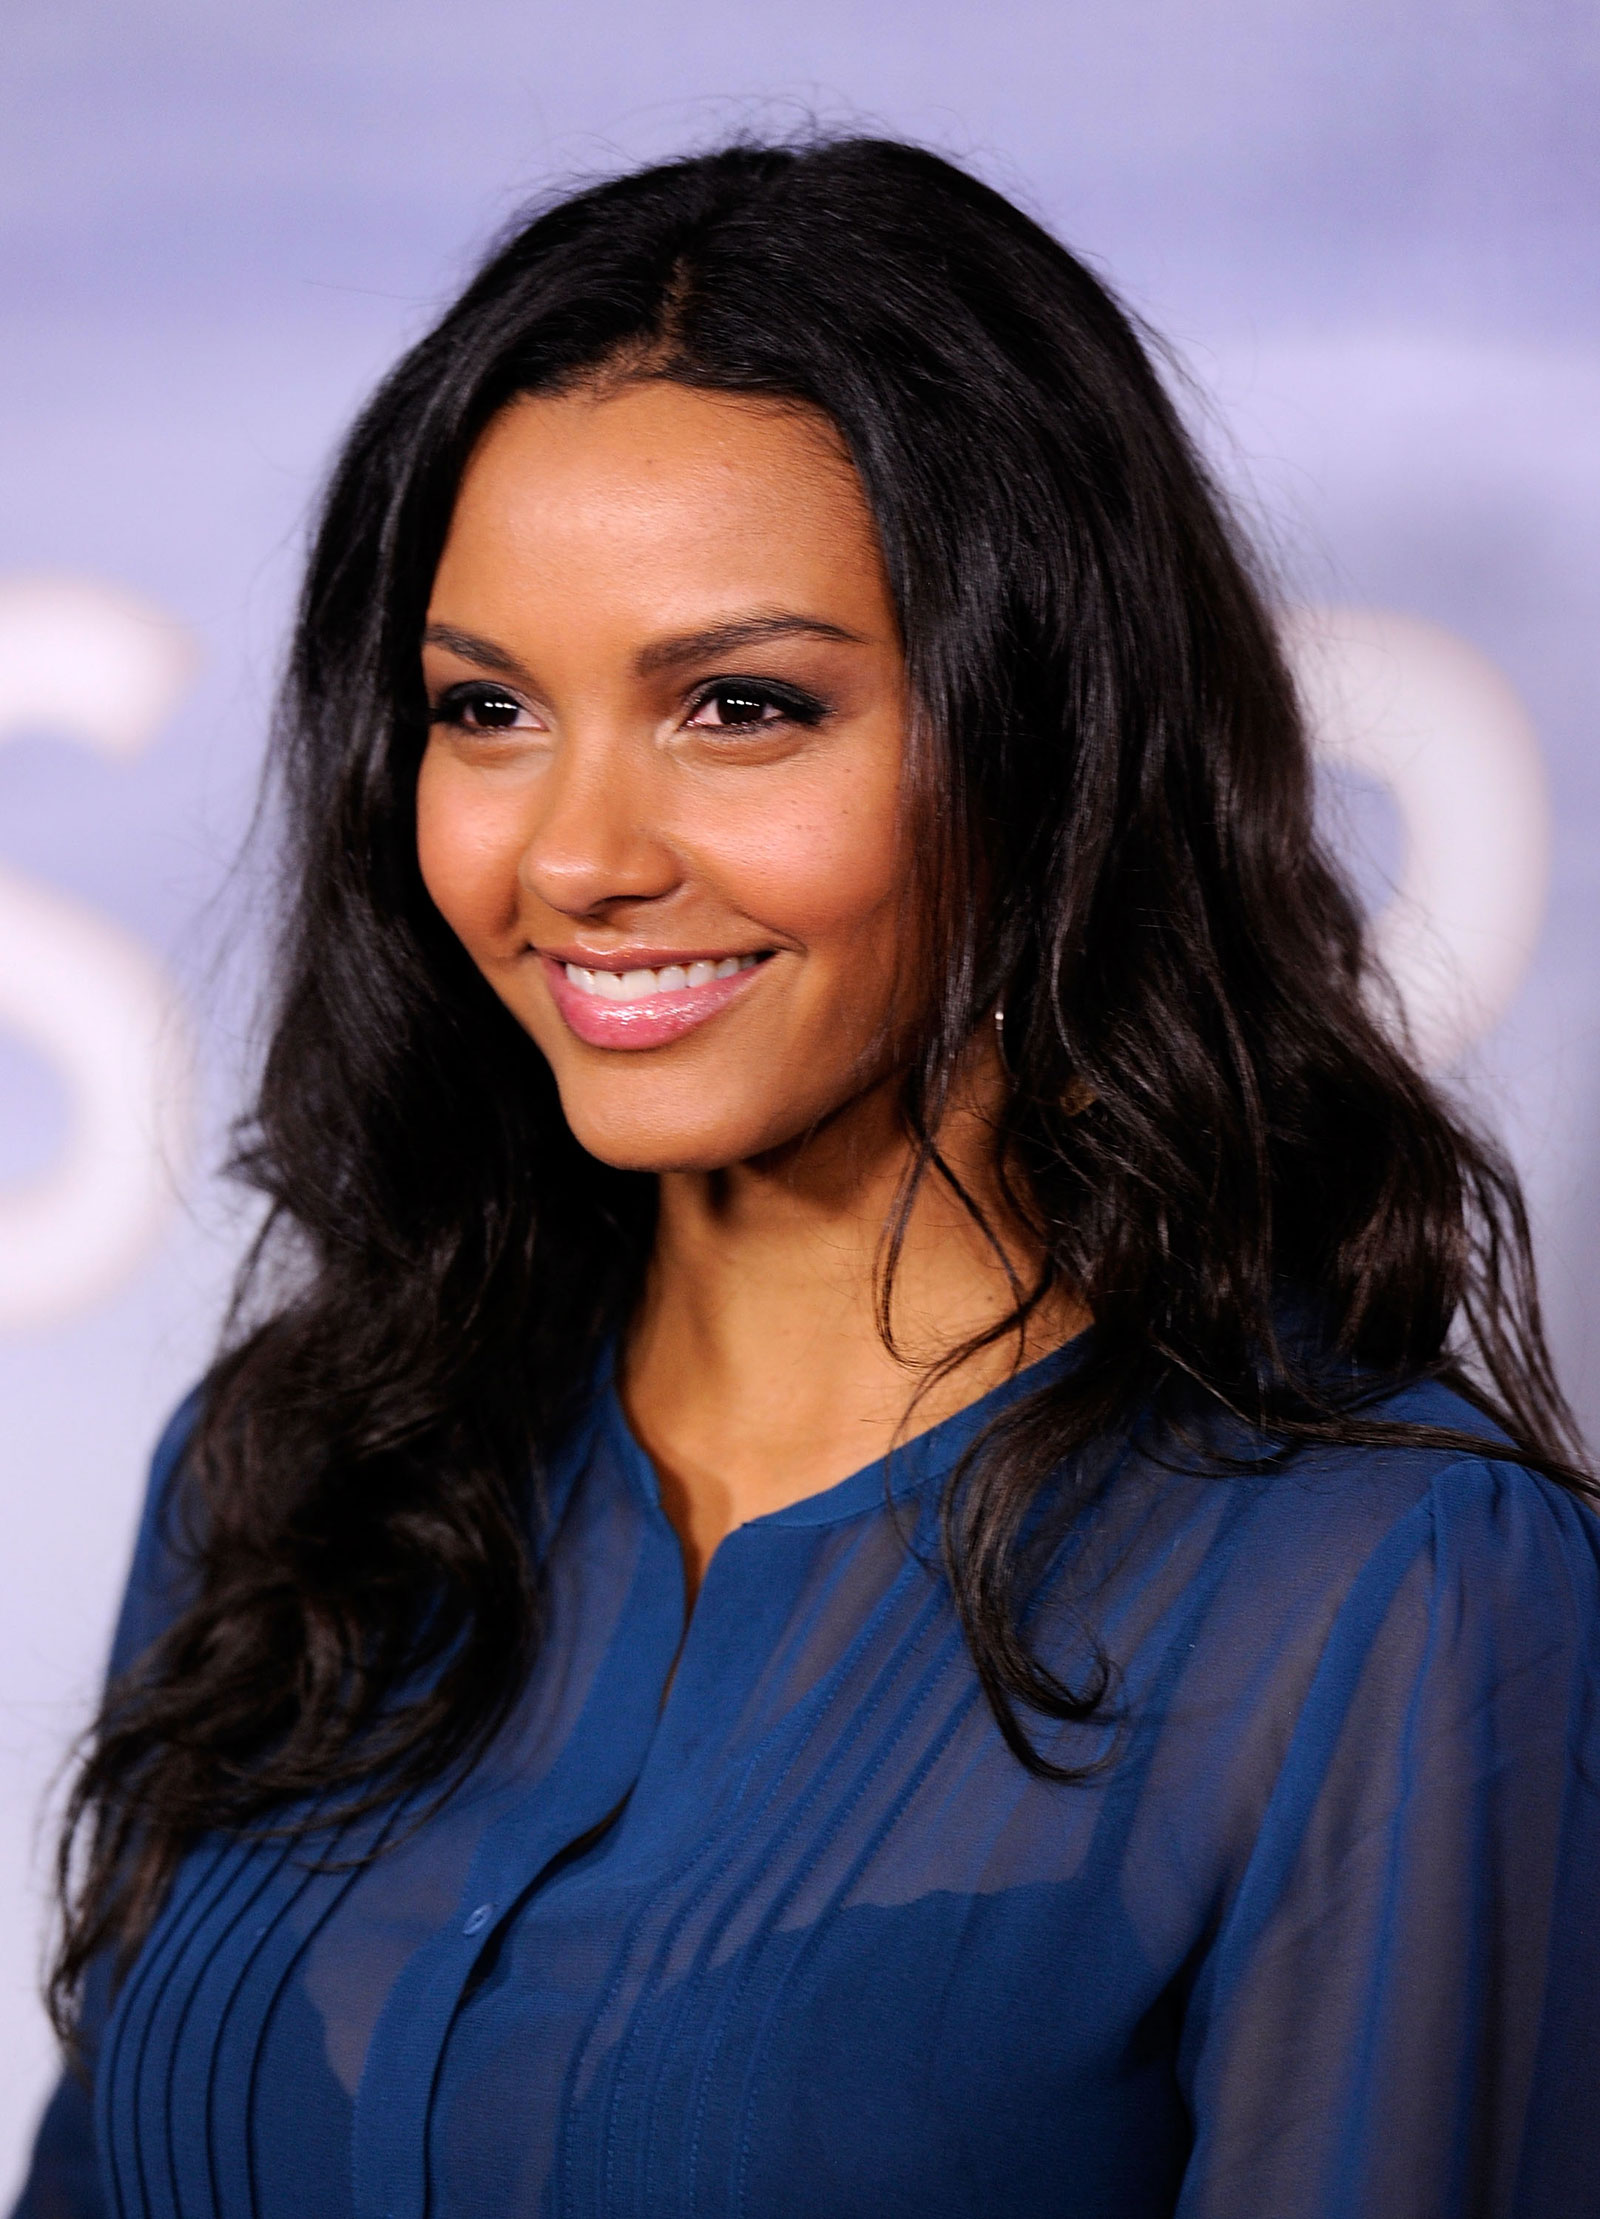 jessica lucas hd wallpapers - photo #30